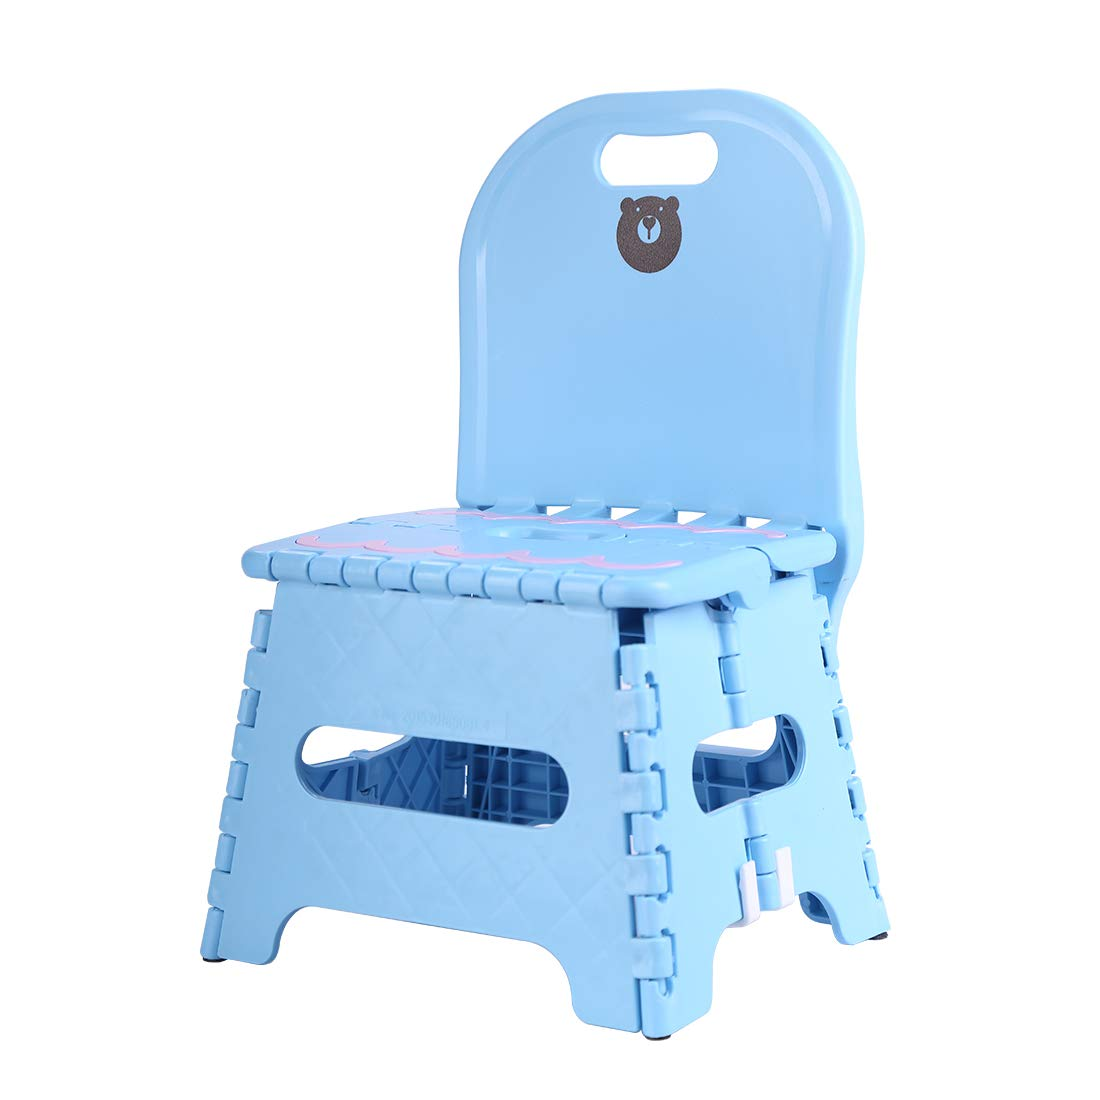 ZDZDZ Cute Travel Portable Non Slip Folding Step Stool with Backrest For Kids & Adults, Kitchen Garden Bathroom Heavy Duty Outdoor Foldable Stool, Holds up to 250 LBS (blue)